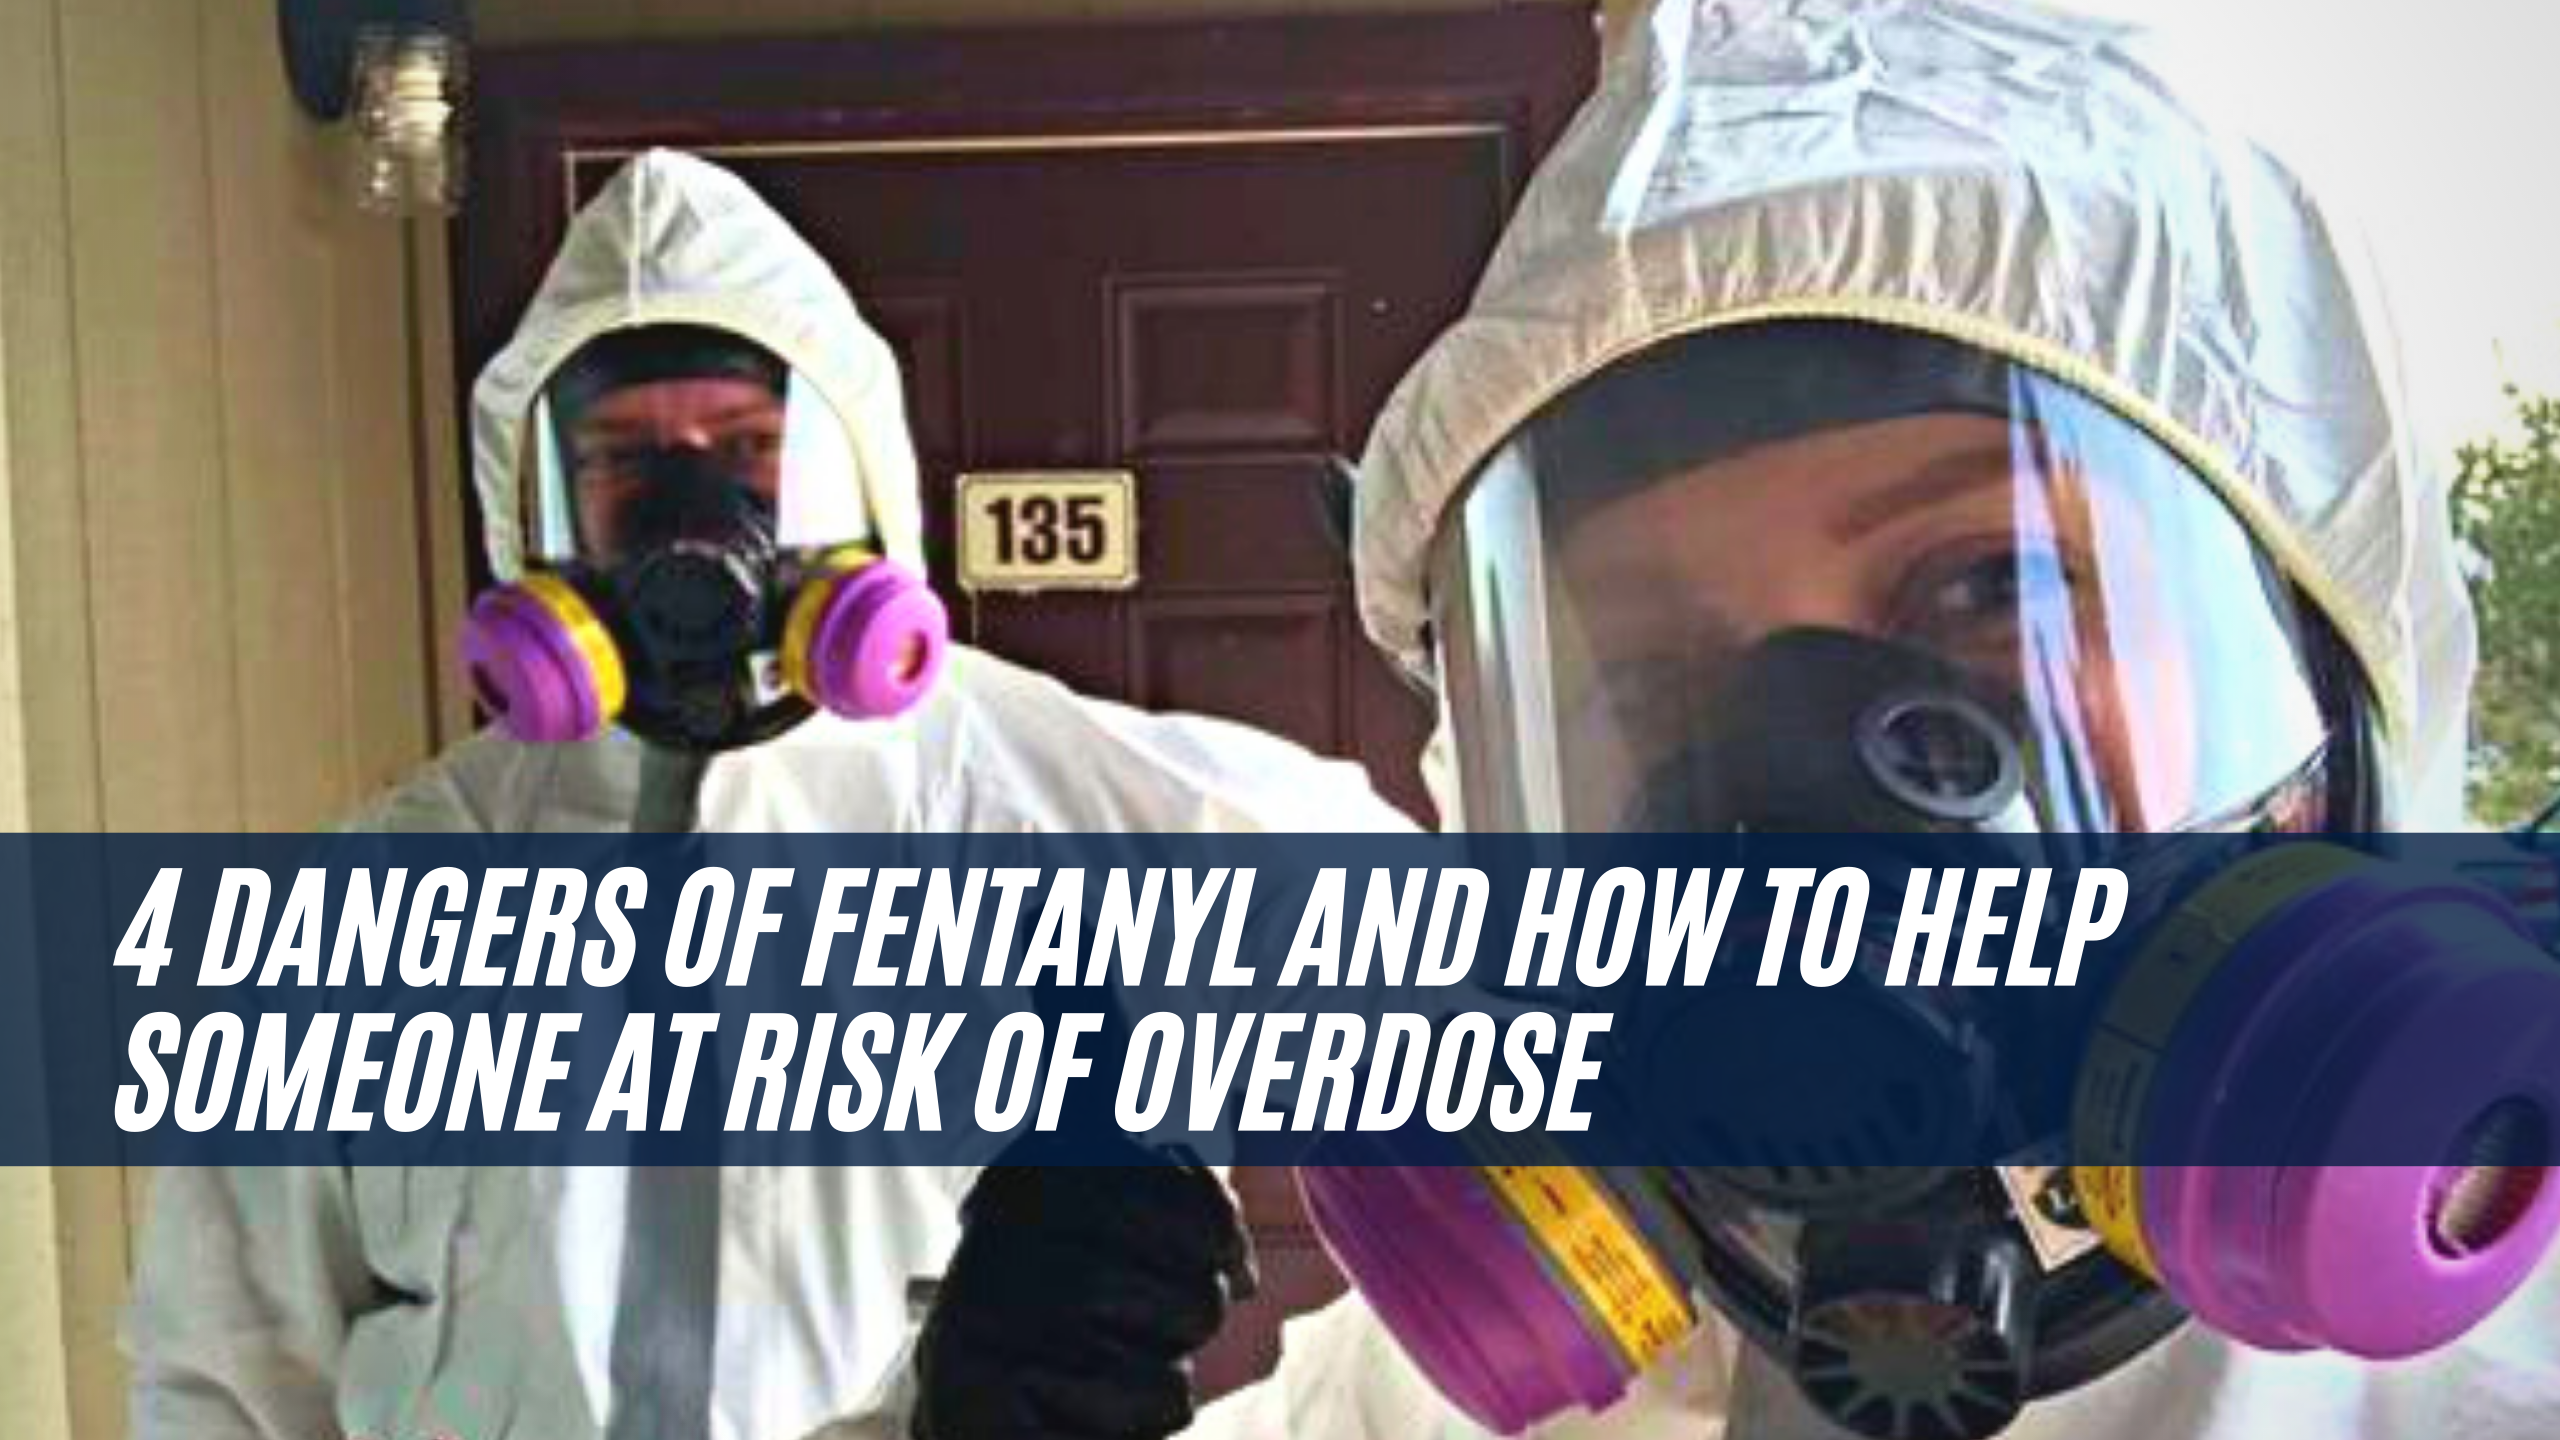 4 Dangers of Fentanyl and how to help someone at risk of overdose